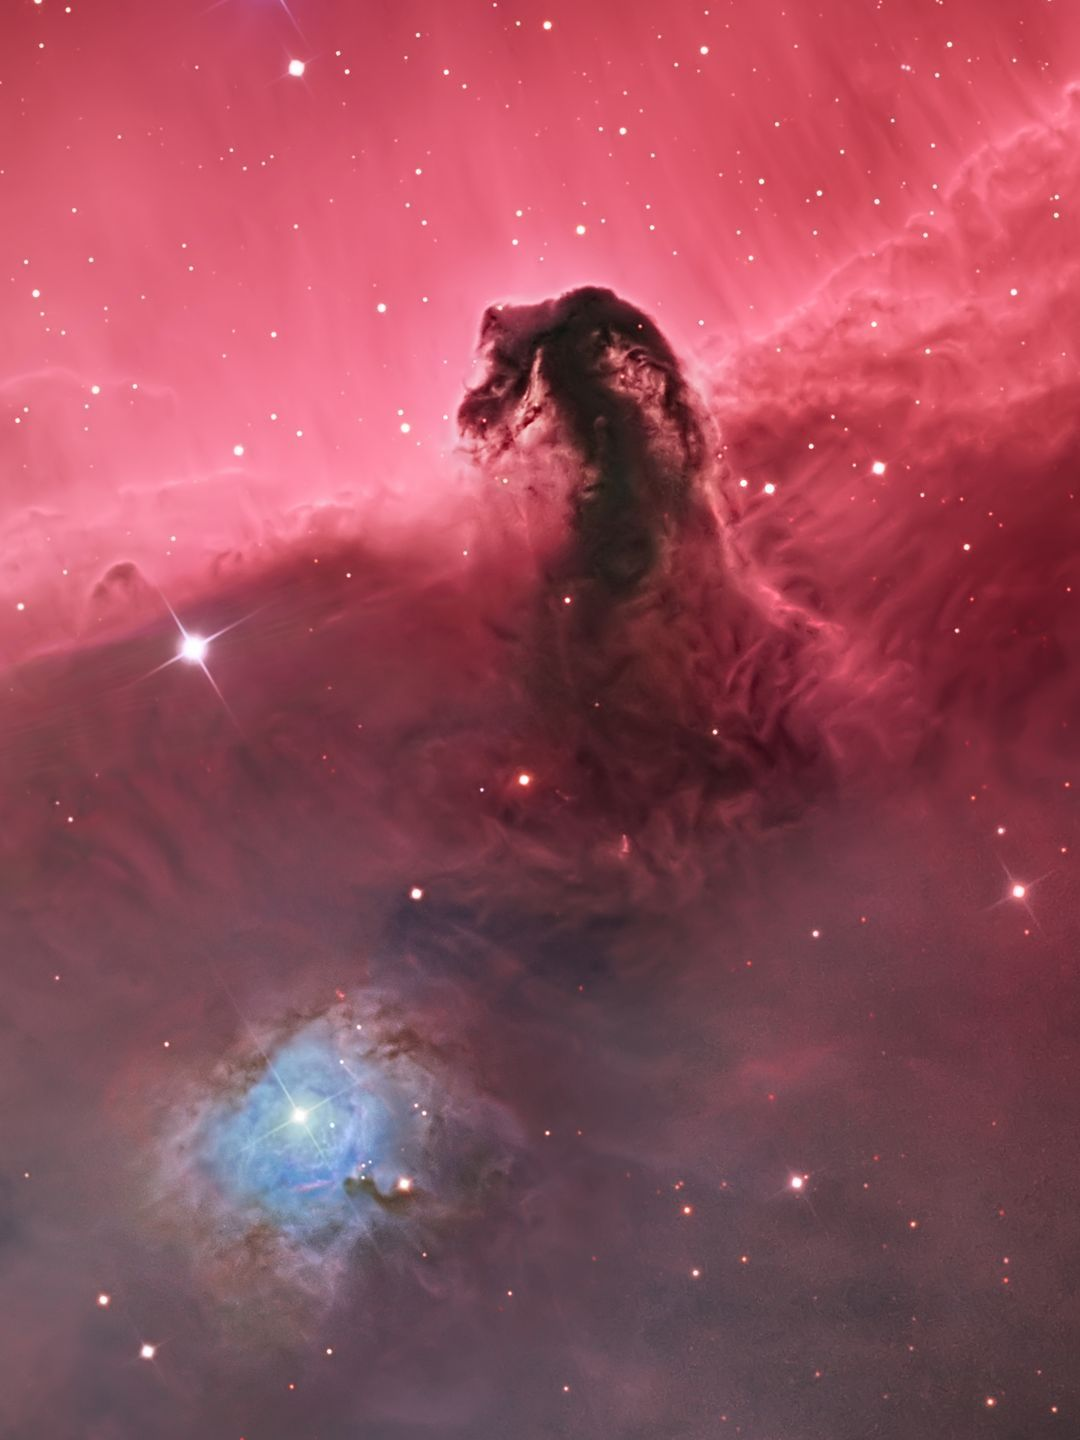 American photographer Bill Snyder won the Deep Space category for his image of the Horsehead Nebula IC 434.